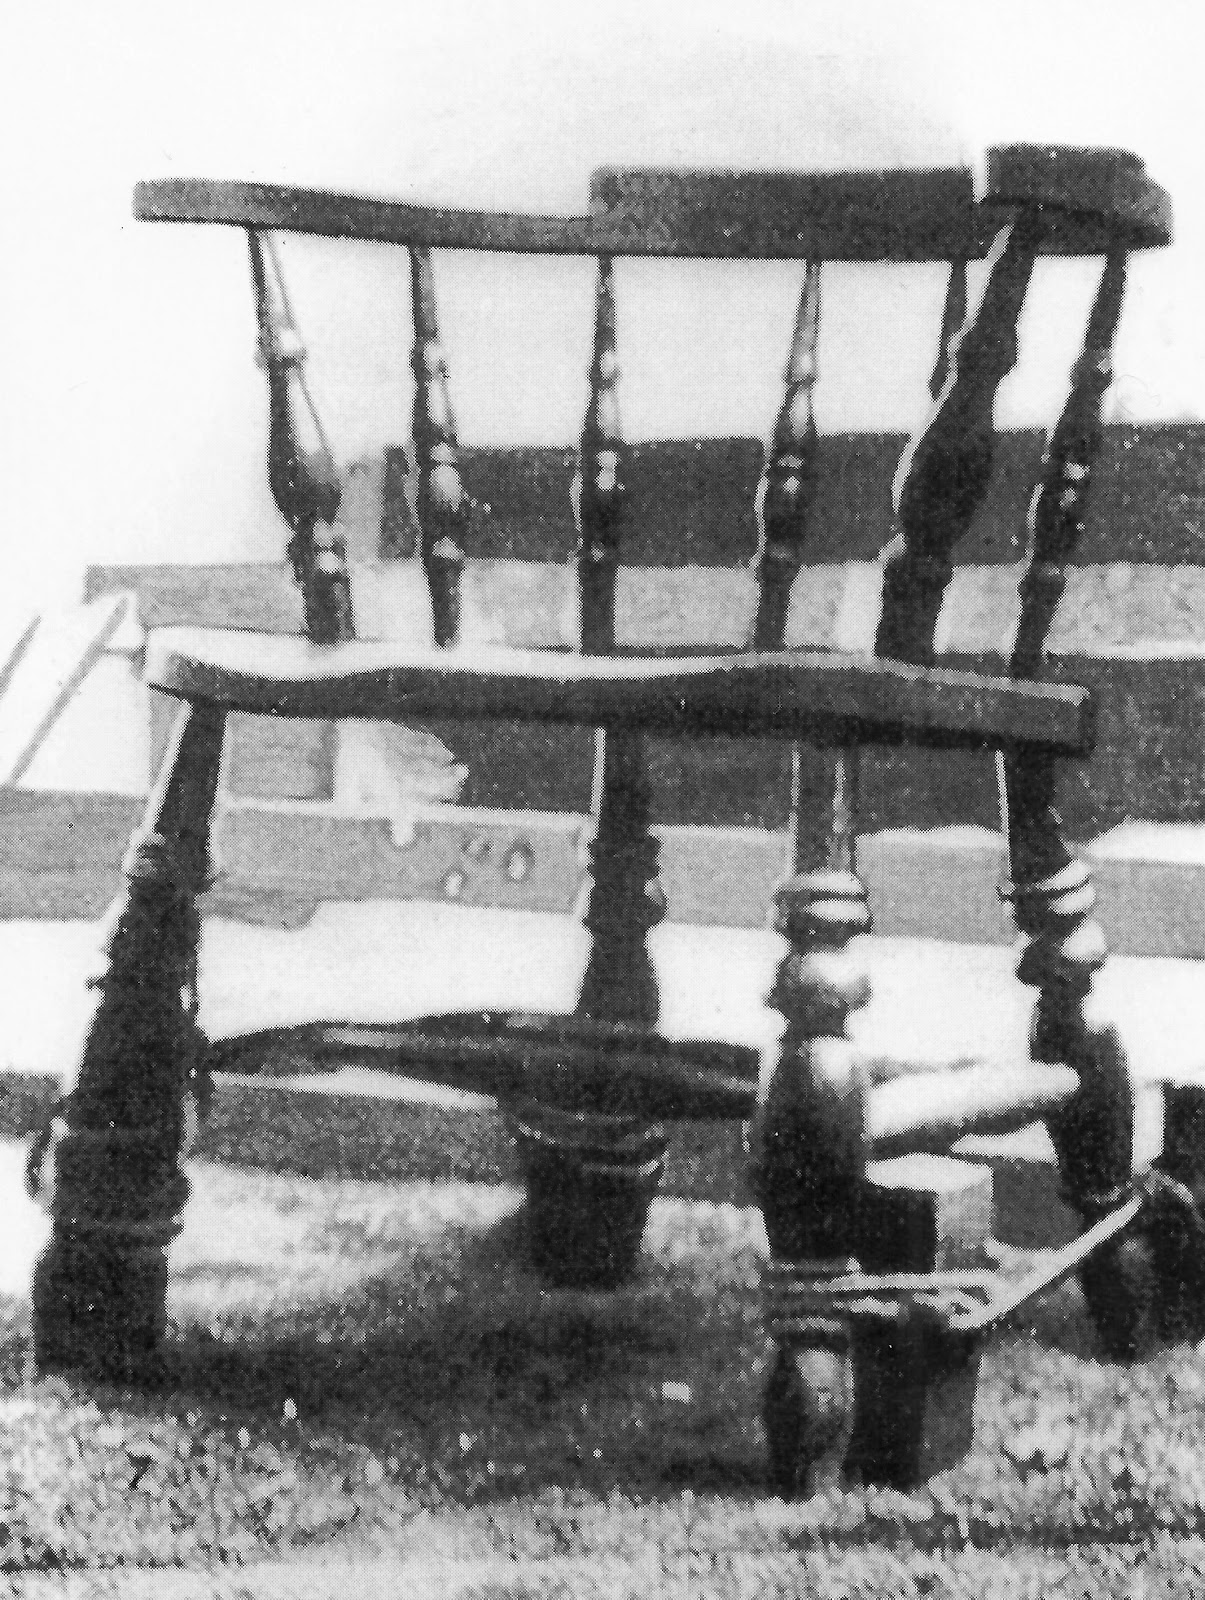 Chair used for the execution of World War I spies.